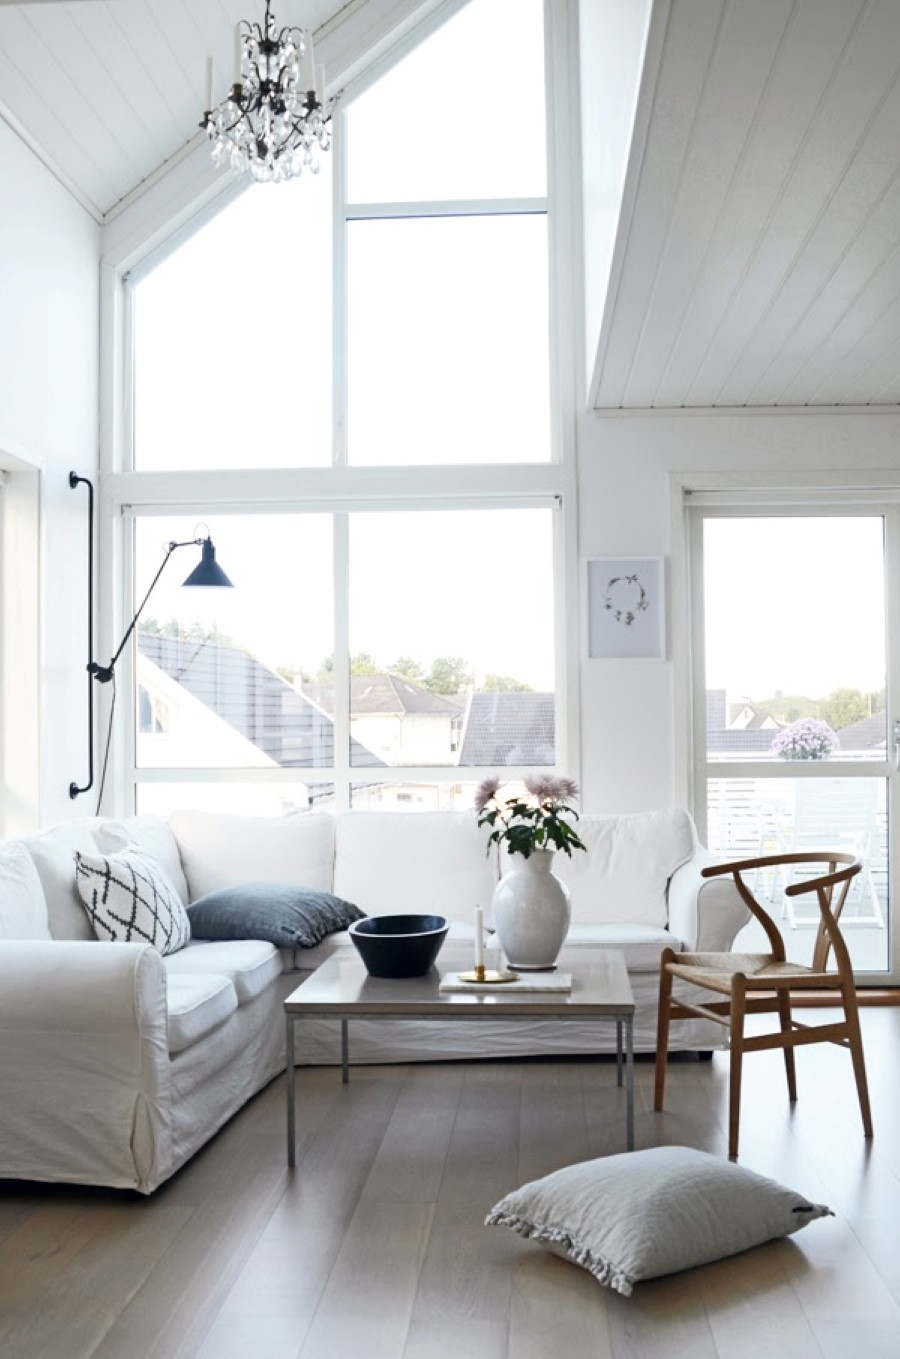 Enrich Your Interior With Casual Scandinavian Style